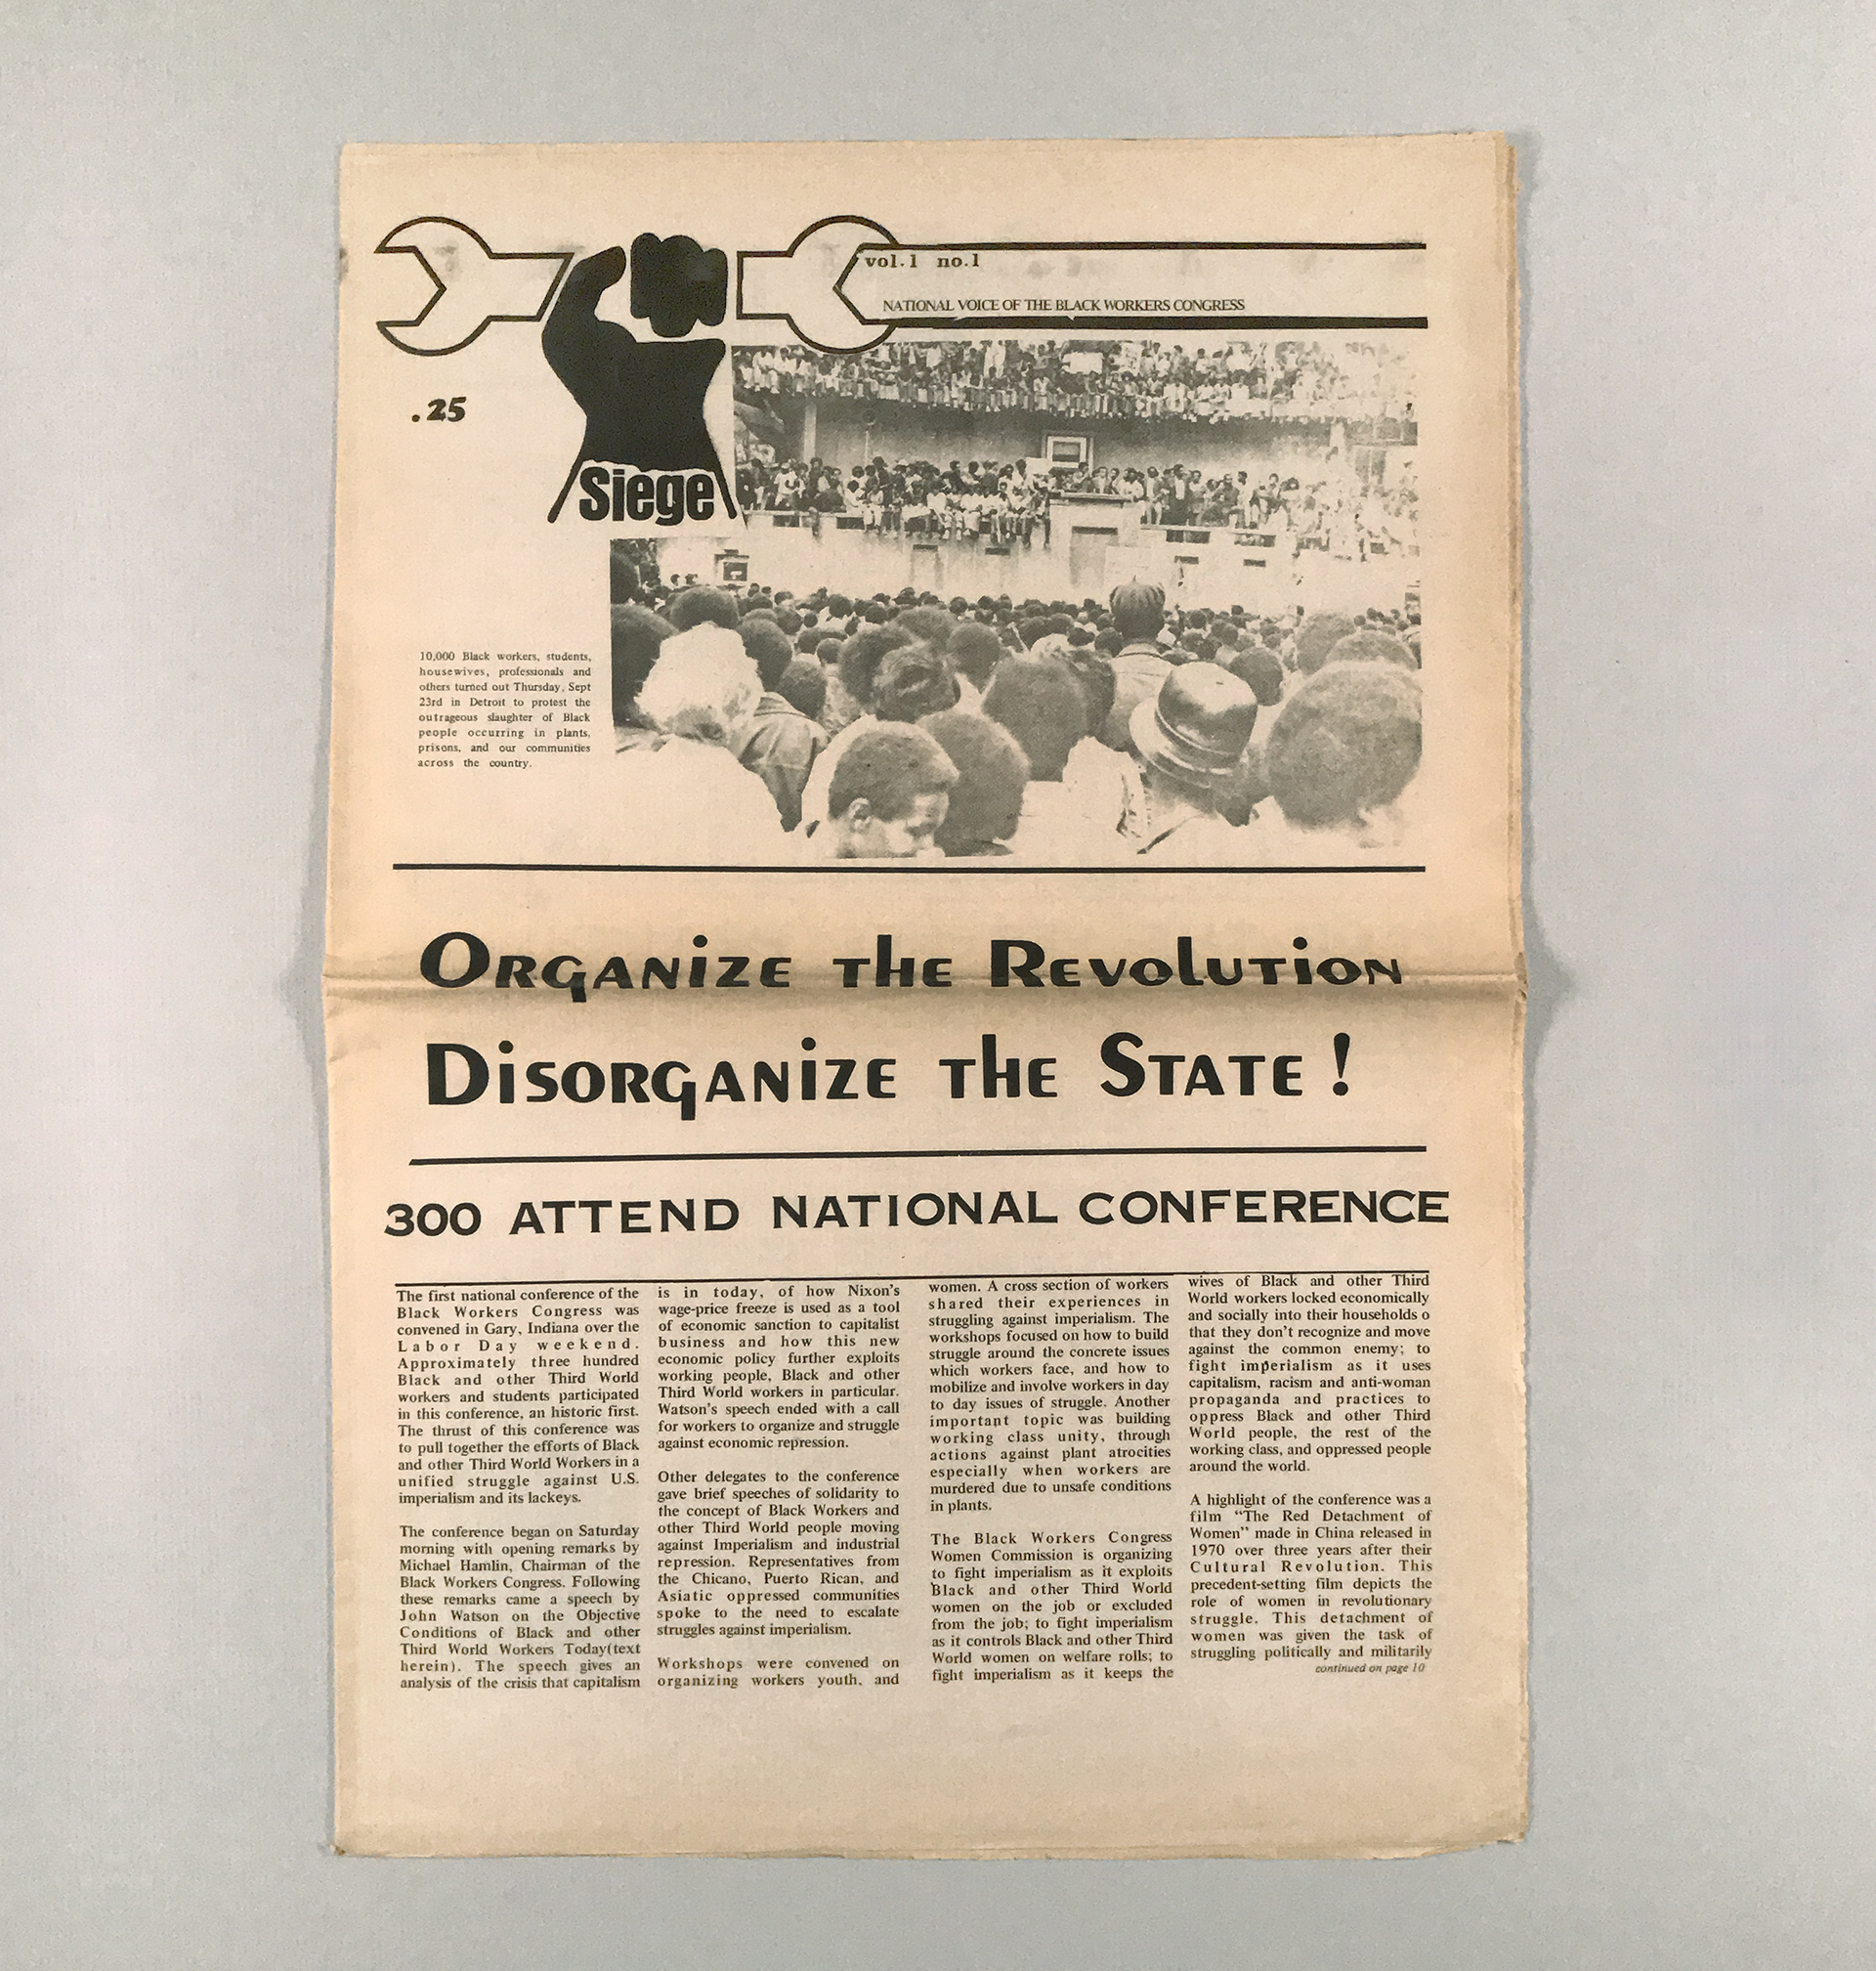 Siege: The Voice of the Black Workers Congress, Vol.1 No.1, 1971